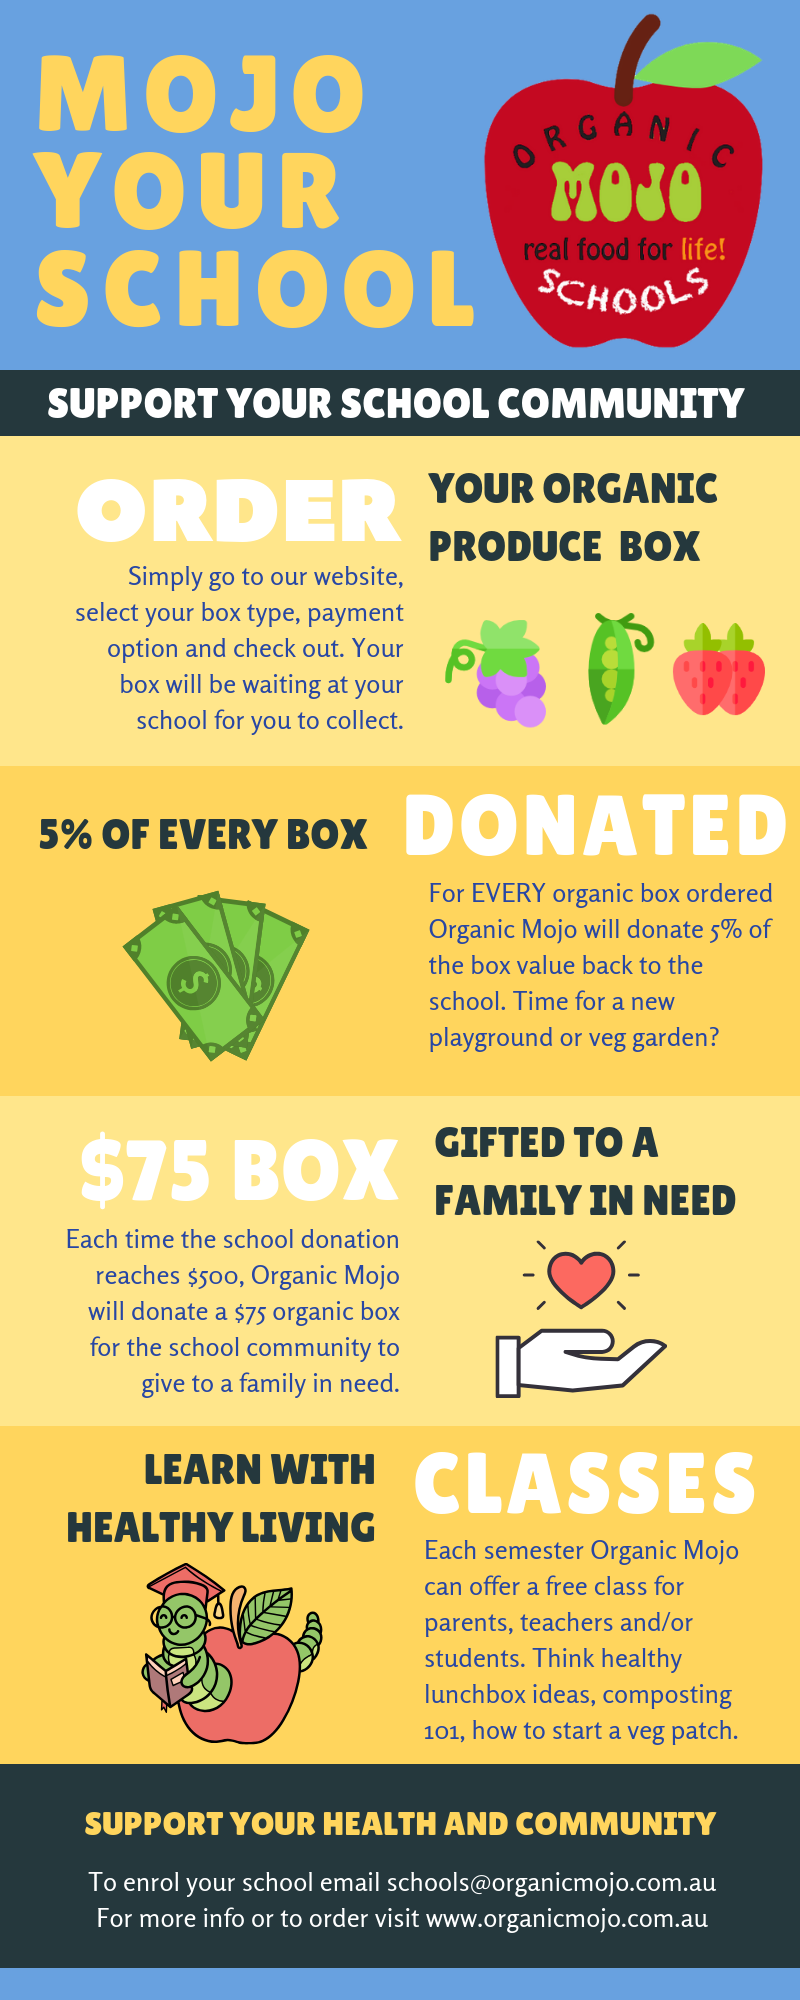 Mojo your school infographic.png